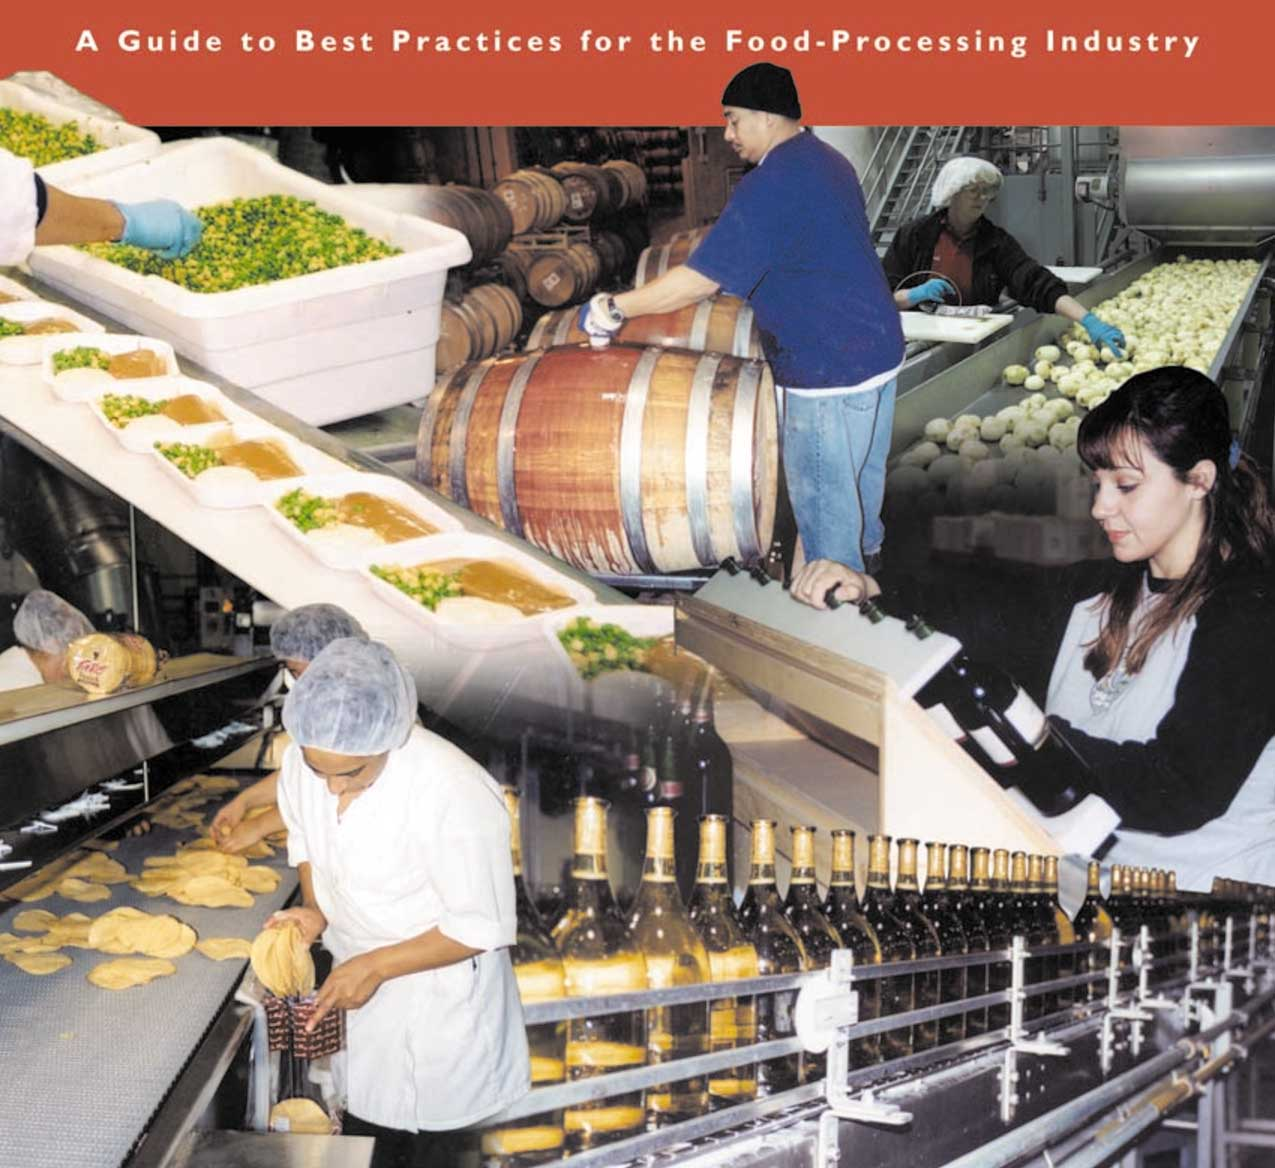 top 10 food processing companies in the world, world's biggest food processing countries,most famous food processing companies in the world, which is the biggest food processing company in the world